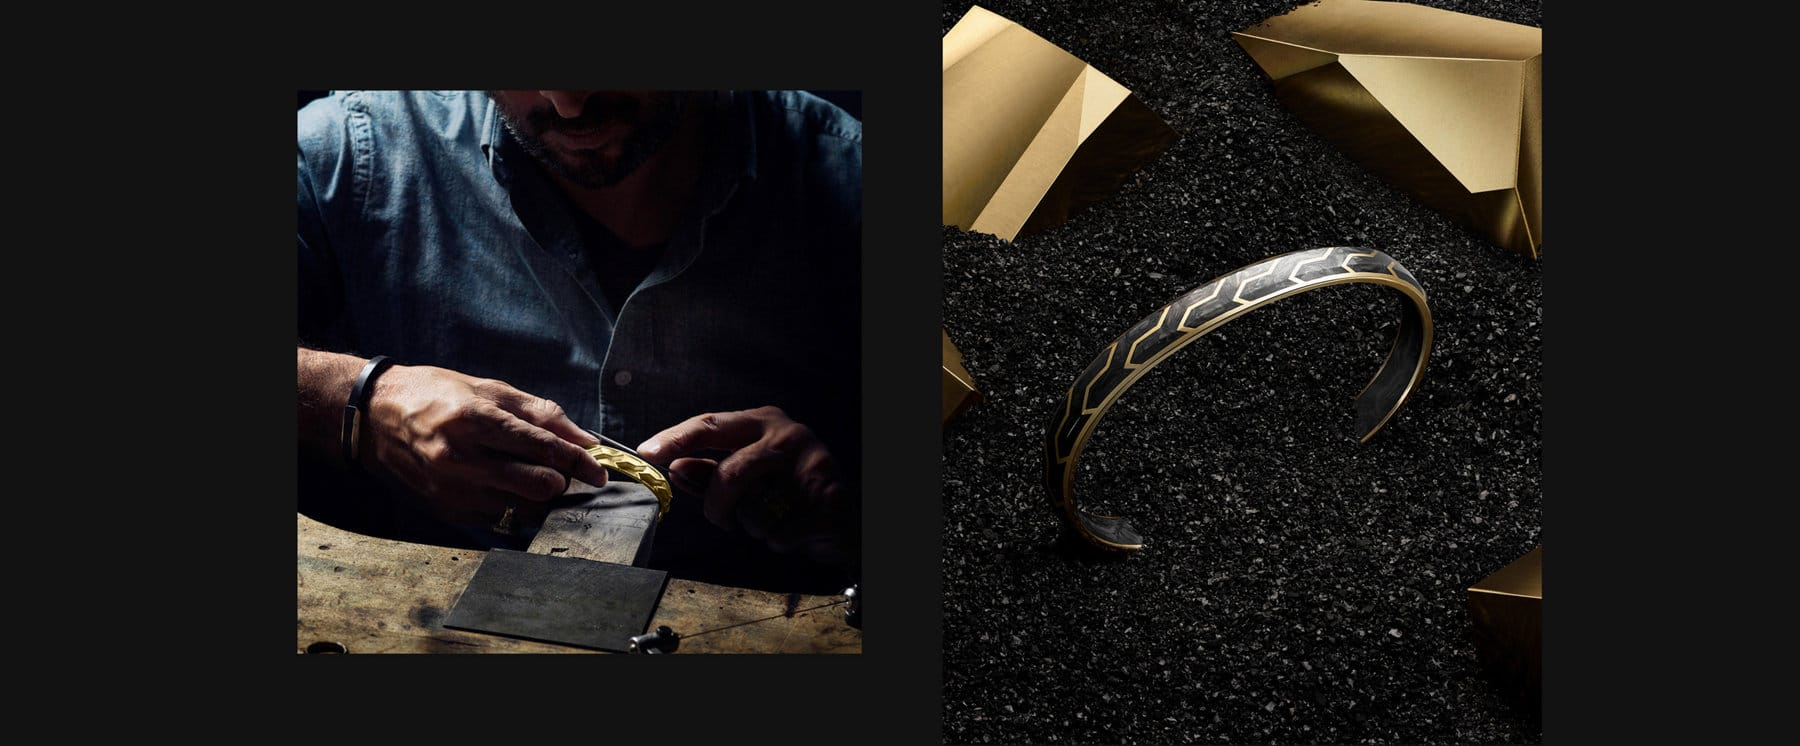 Color photographs showing custom forged carbon fenders attached to a wheel of the David Yurman Forged Carbon Moto by MV Agusta and two David Yurman Forged Carbon bands in 18K gold with forged carbon standing up near geometric blocks of gold in a pile of forged carbon shavings.